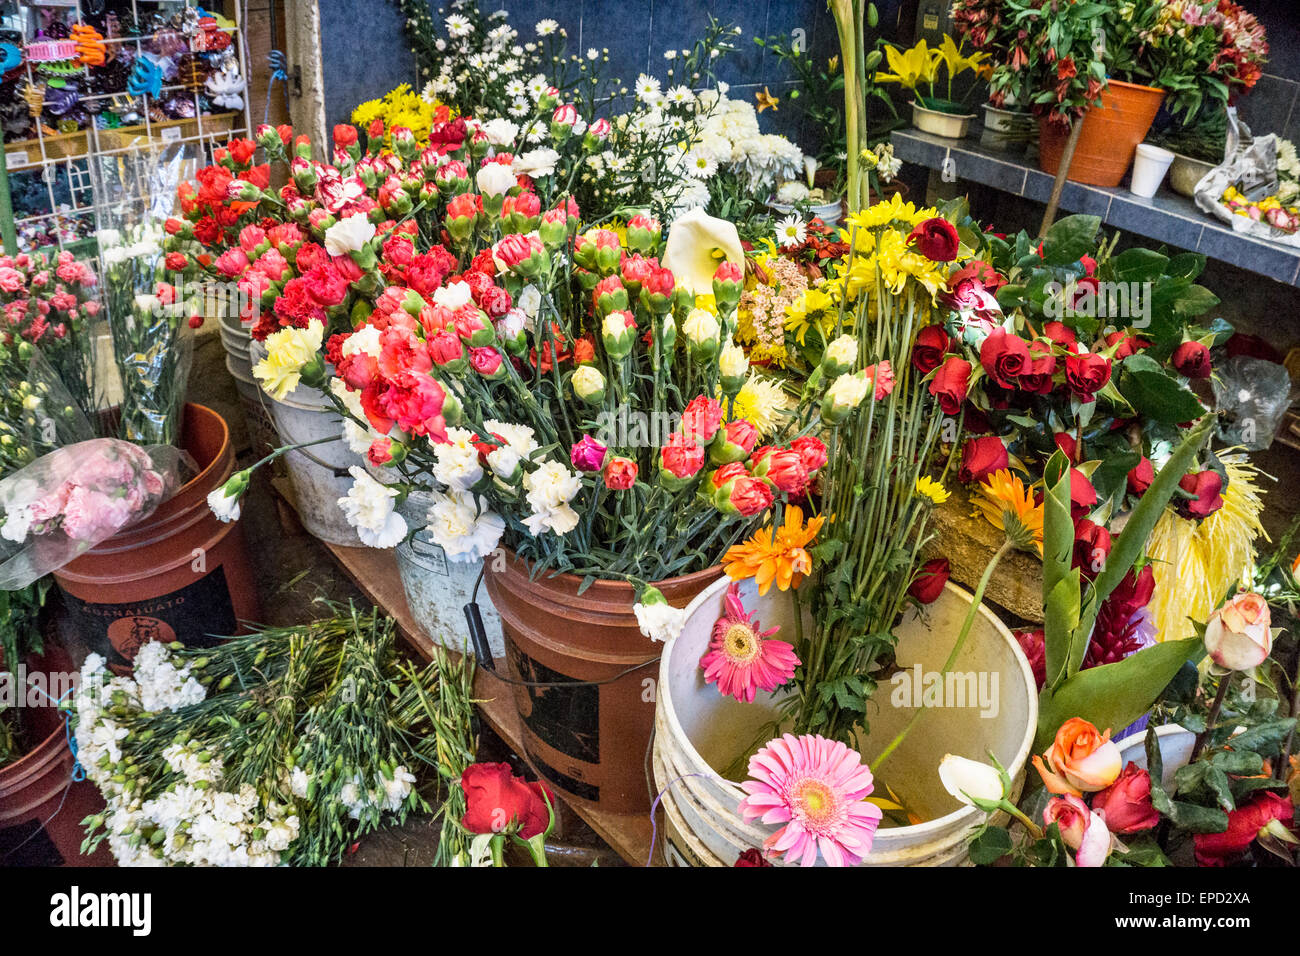 profusion of fresh spring flowers in glorious disarray at florist stall in main market San Cristobal de las Casas - Stock Image